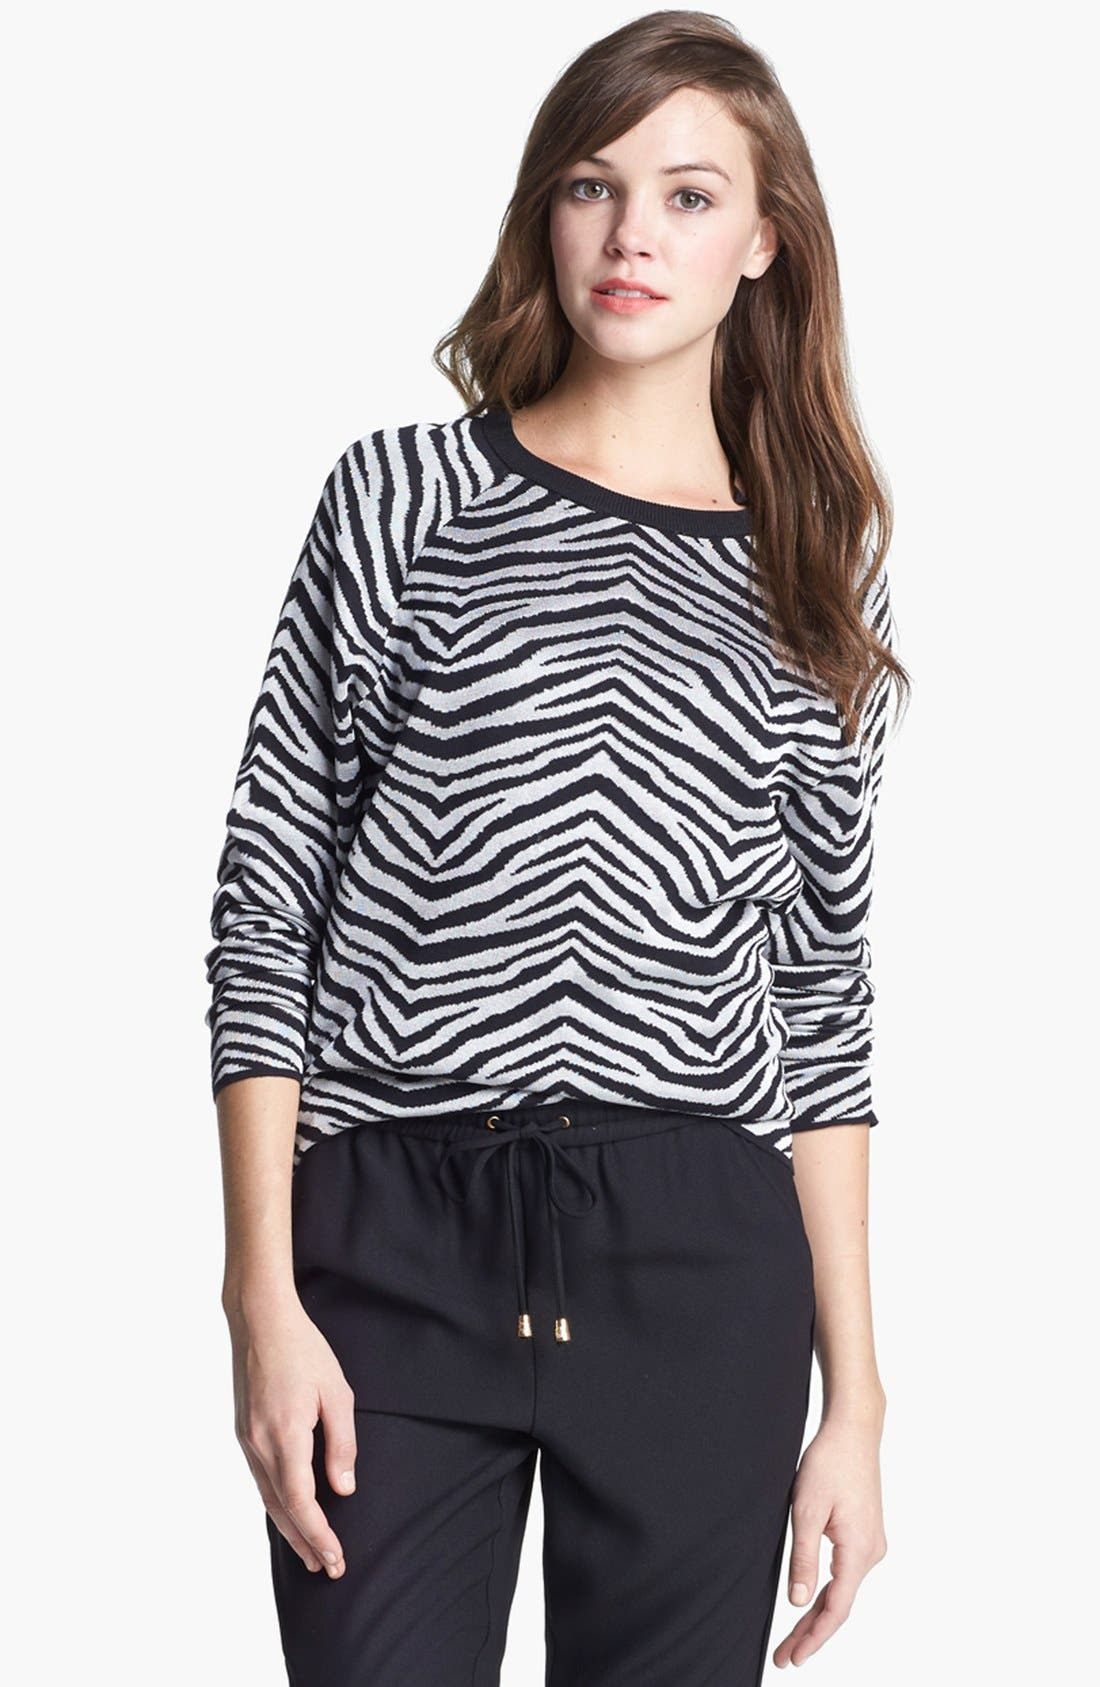 Main Image - Vince Camuto Zebra Stripe Top (Regular & Petite)